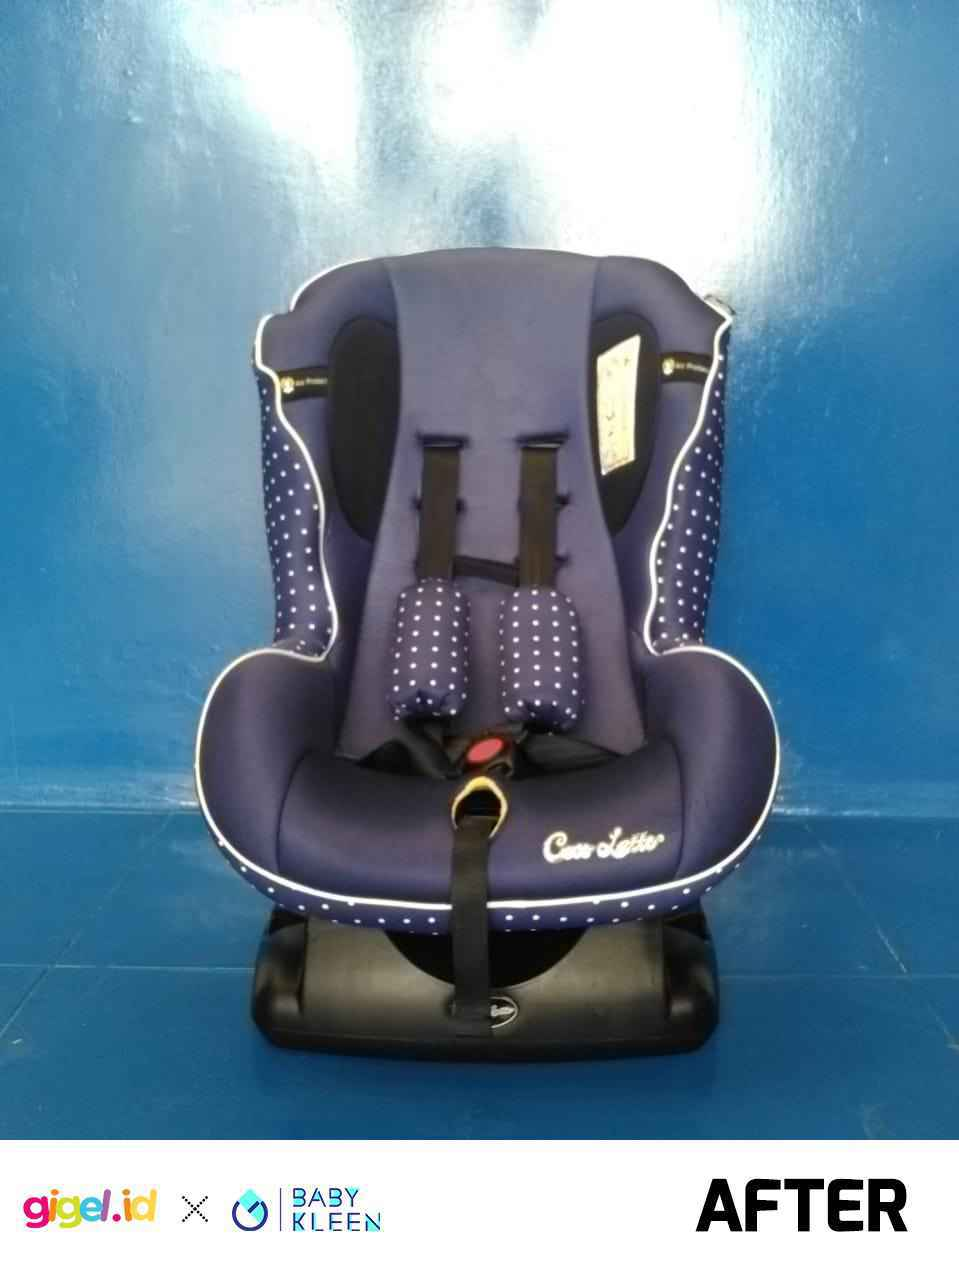 GIGEL.ID x Baby Kleen Laundry Car Seat - 5